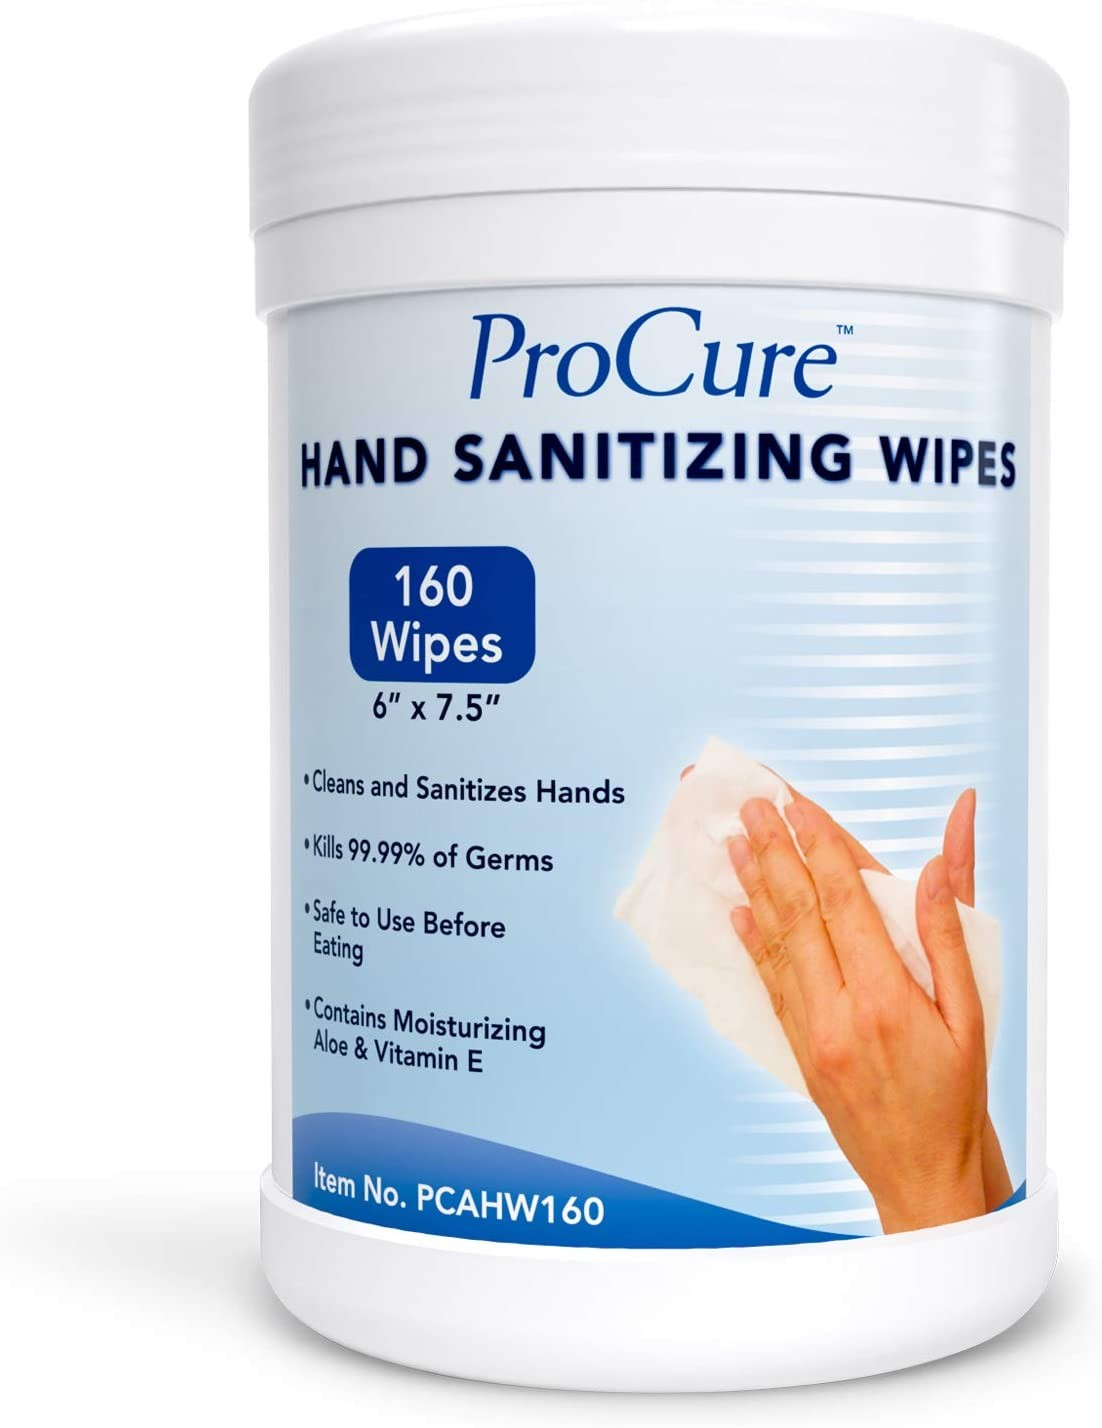 ProCure Hand Sanitizing Wipes Canister,160 Wipes